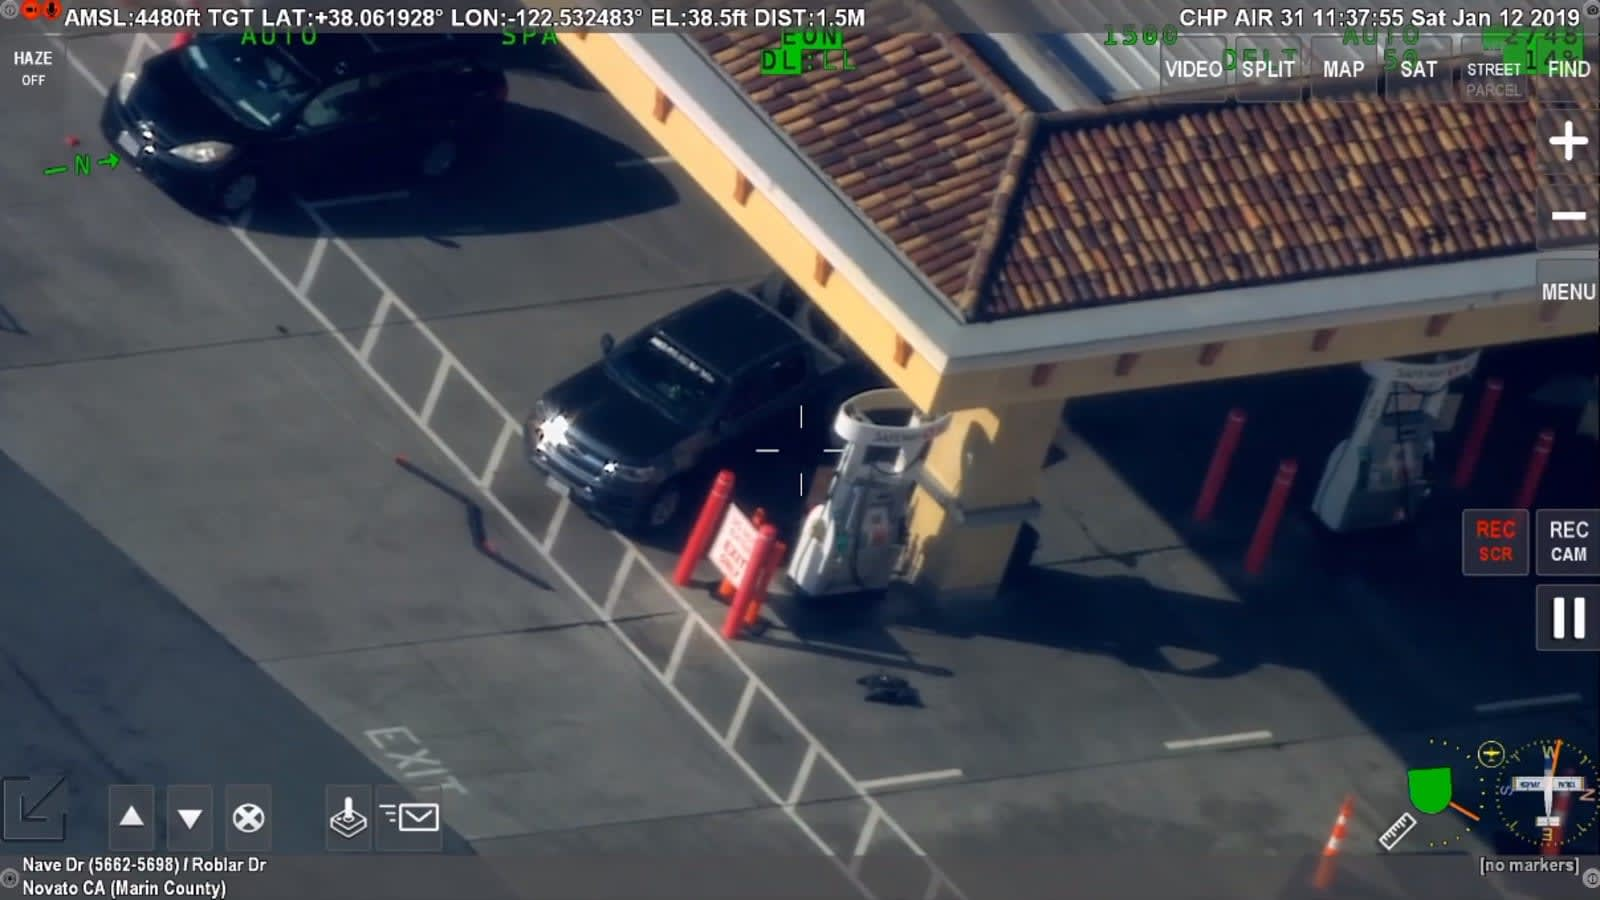 Police ended a gas station standoff by using a robot to